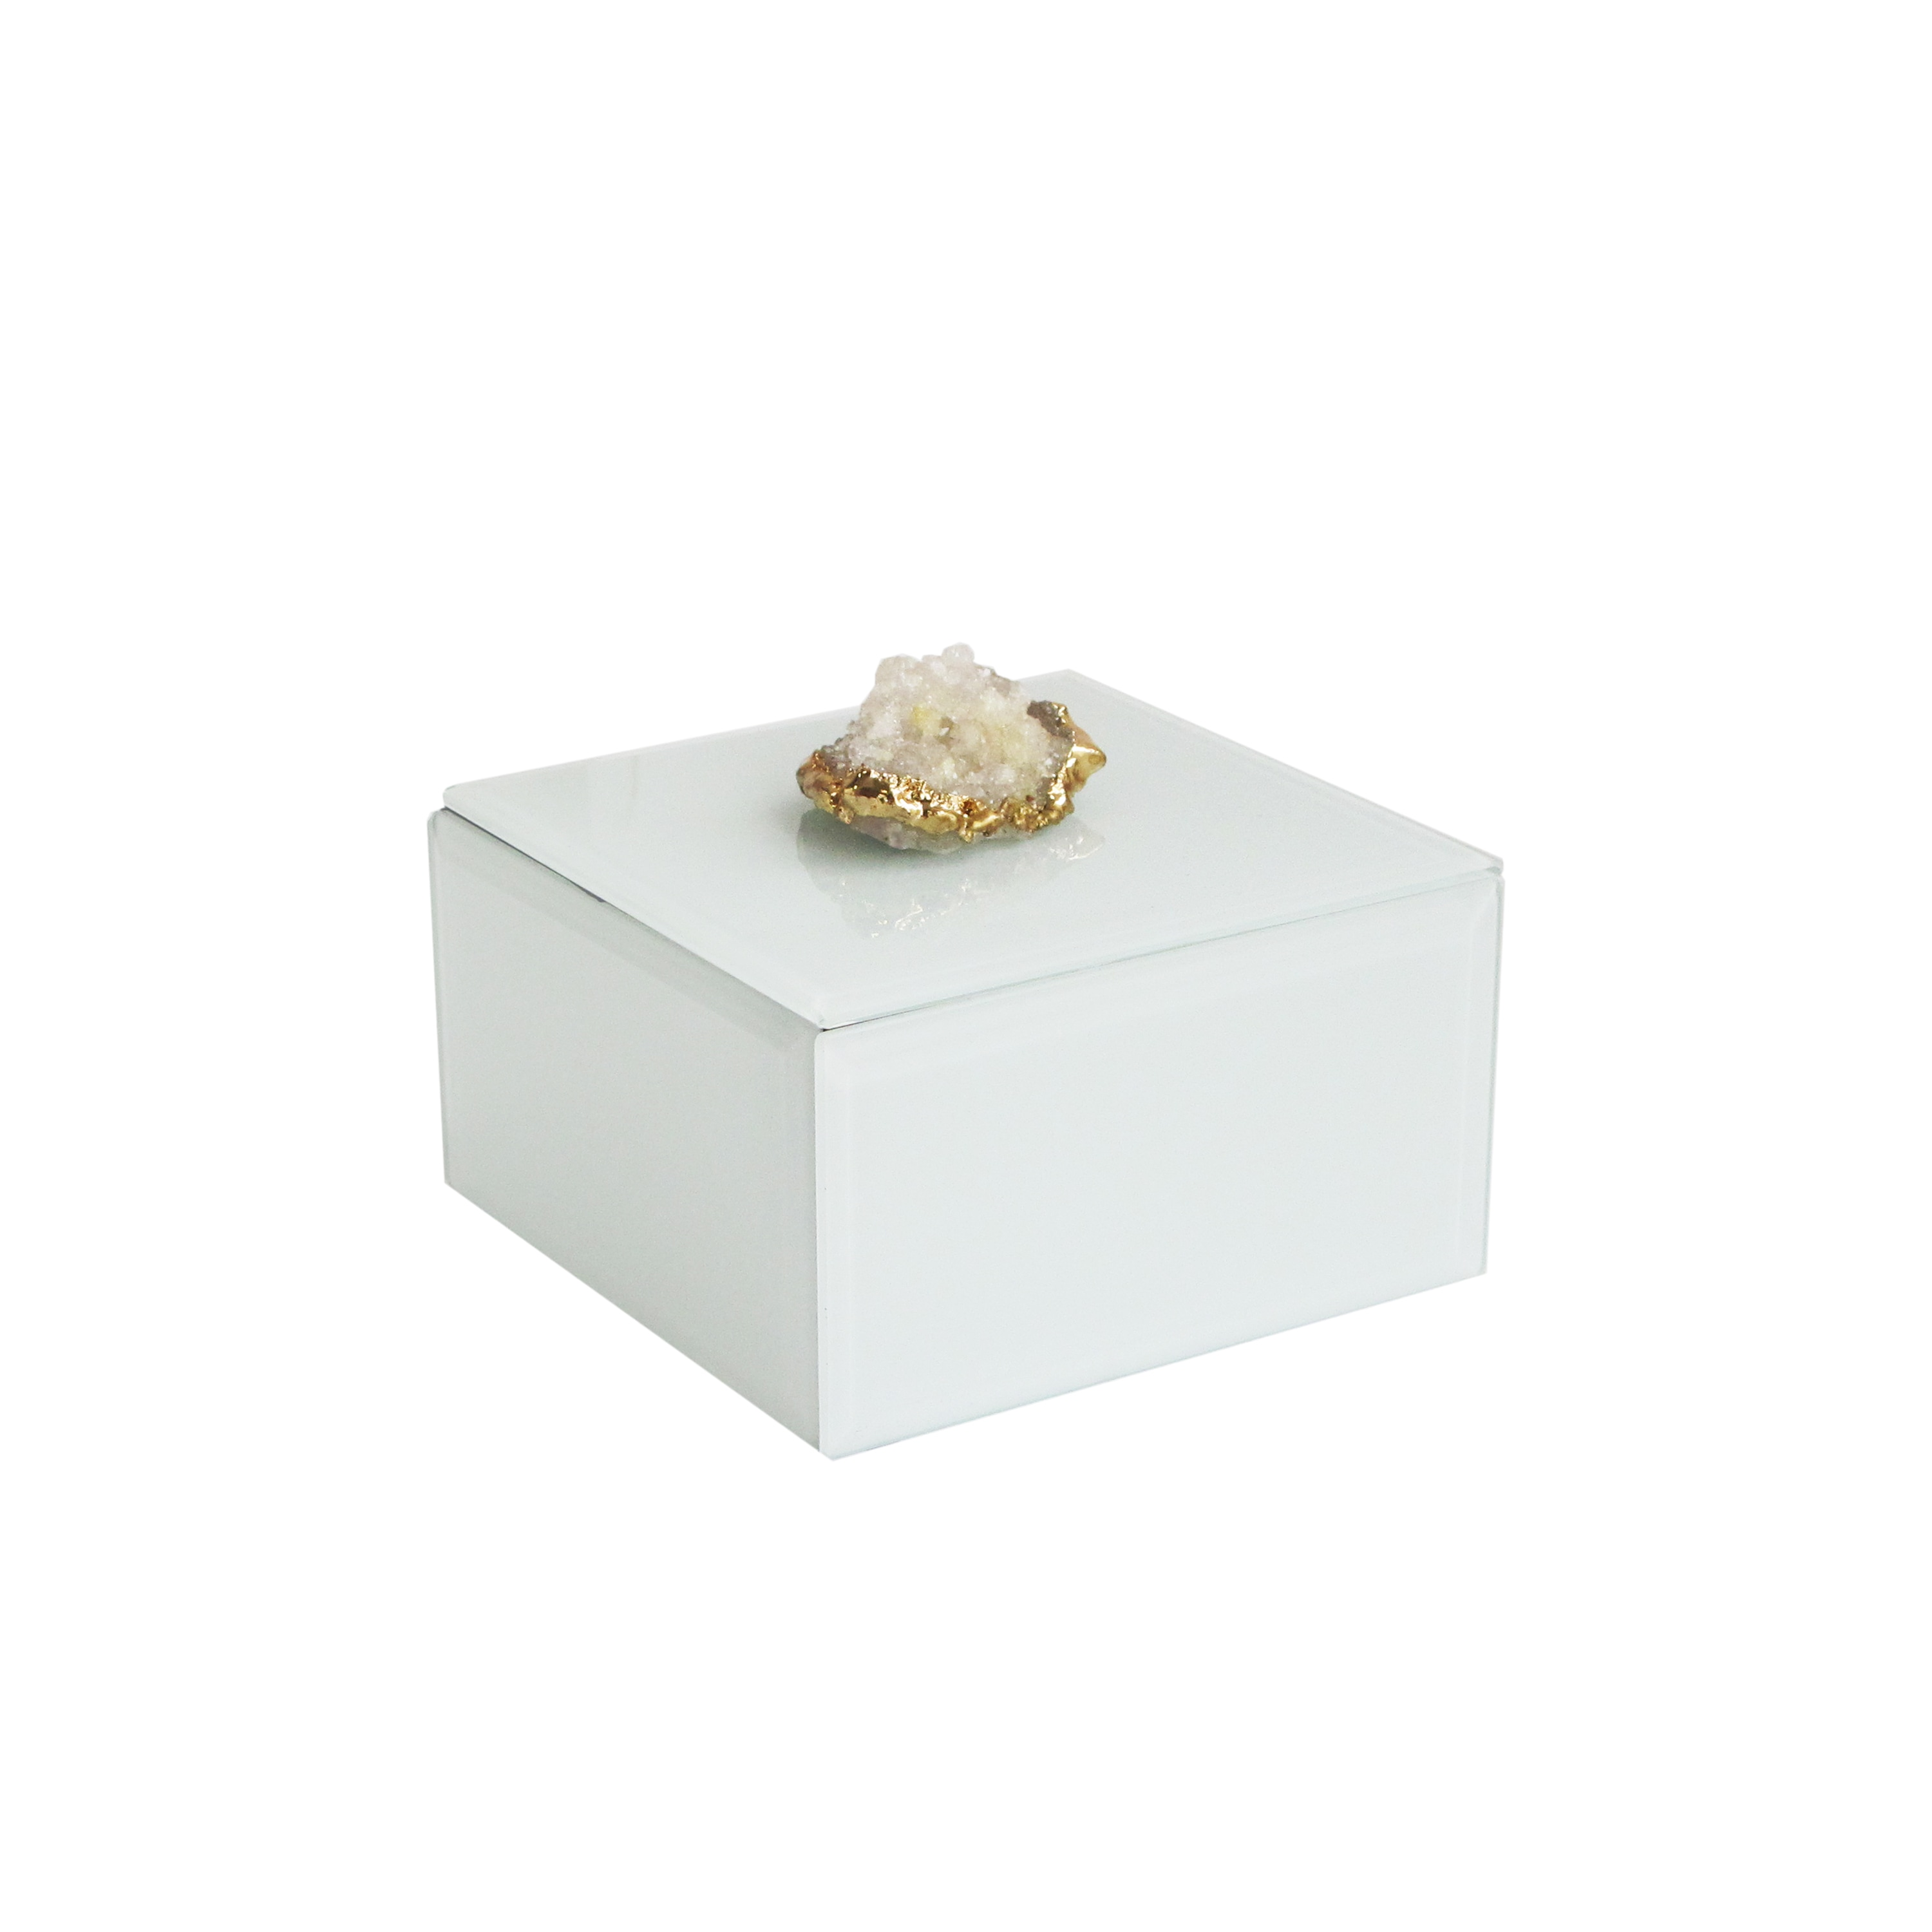 """Allure by Jay Agate White Box 4.5 x 4.5 x 2.5"""""""